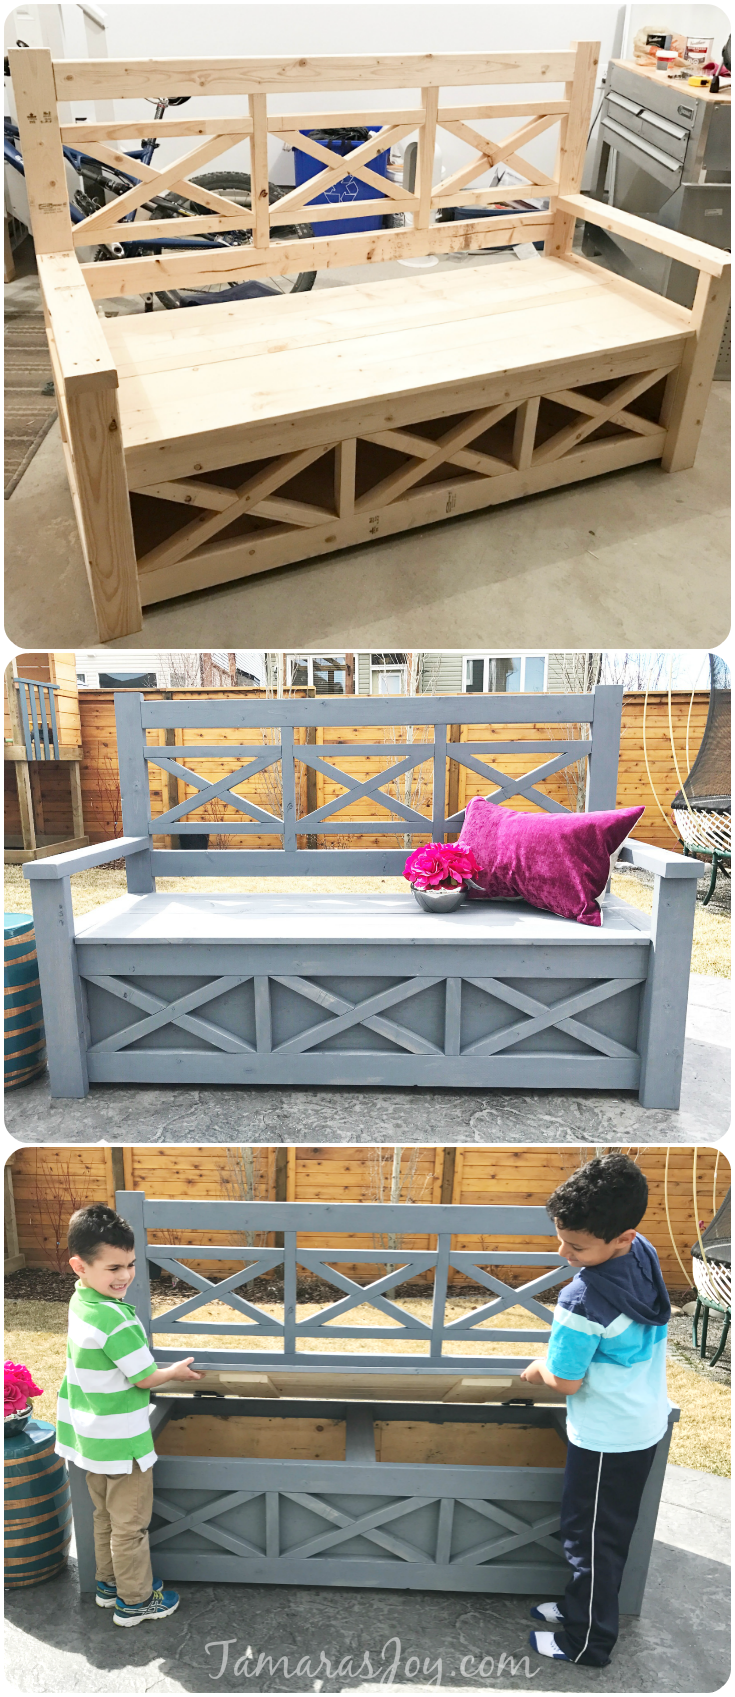 Outdoor Storage Ottoman Bench Part - 17: This Diy Outdoor Storage Bench Started From An Ana White Building Plan.  With A Few